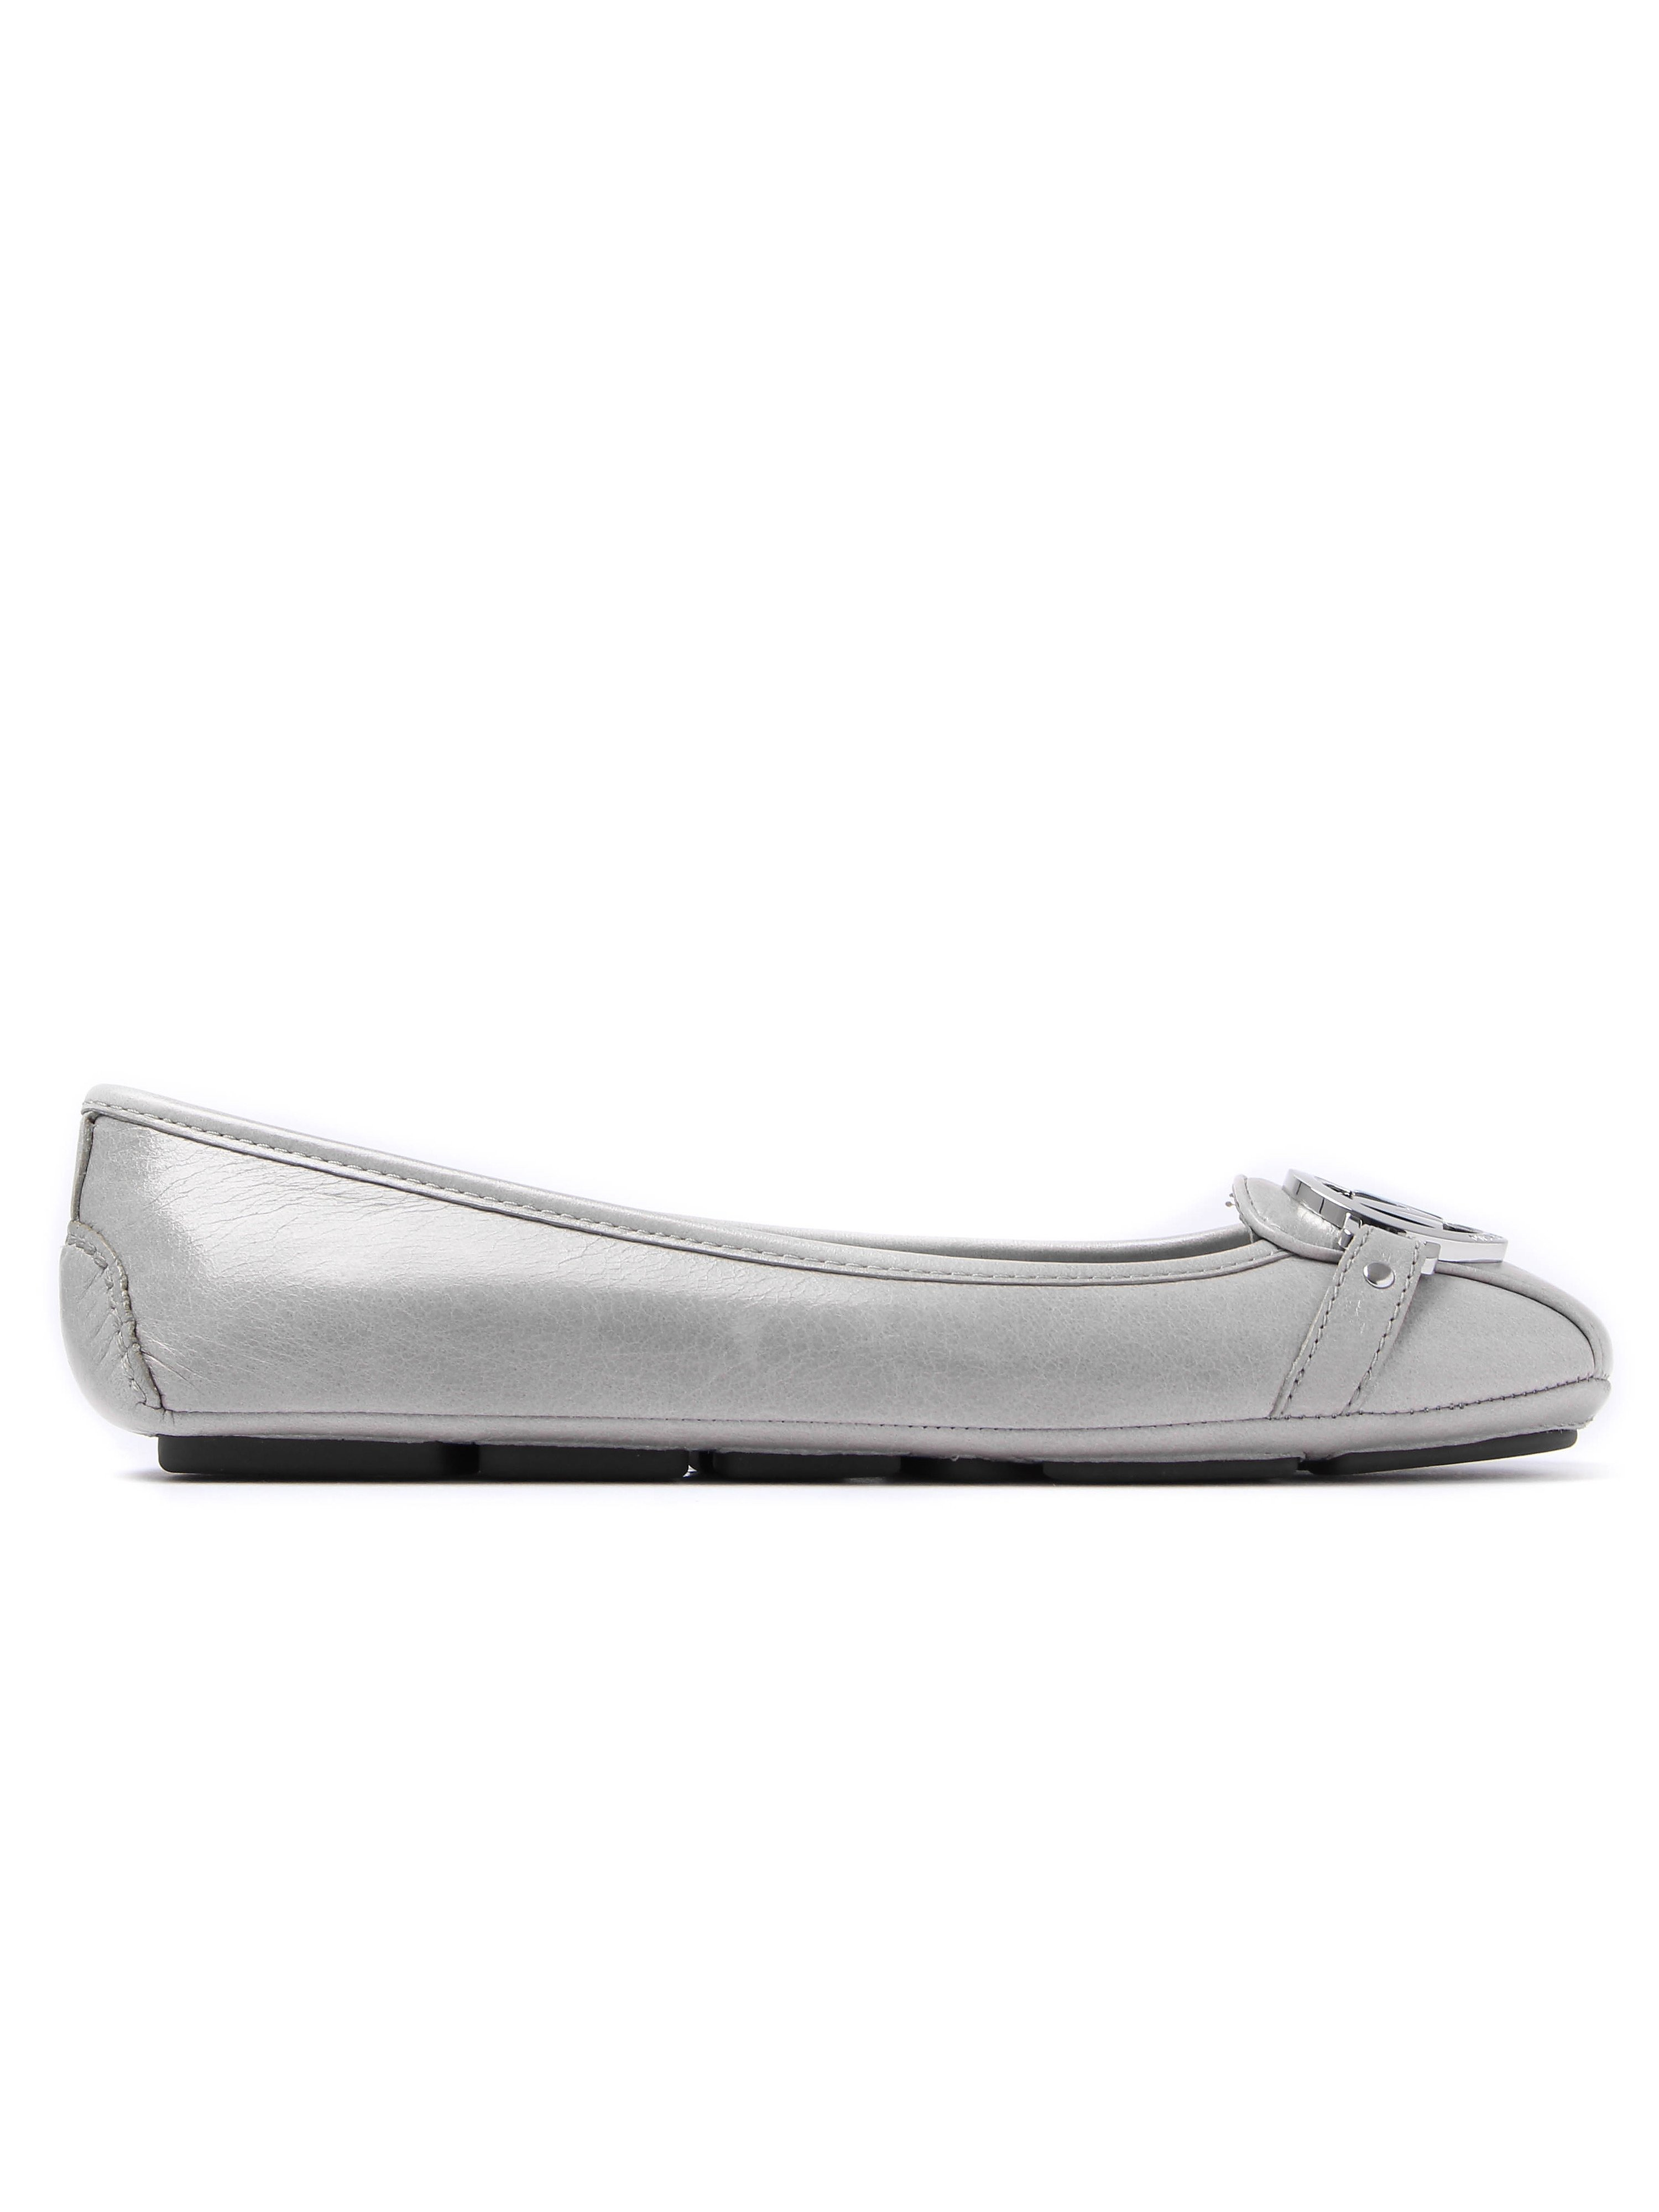 MICHAEL Michael Kors Women's Fulton Moc Leather Ballerinas - Pearl Grey